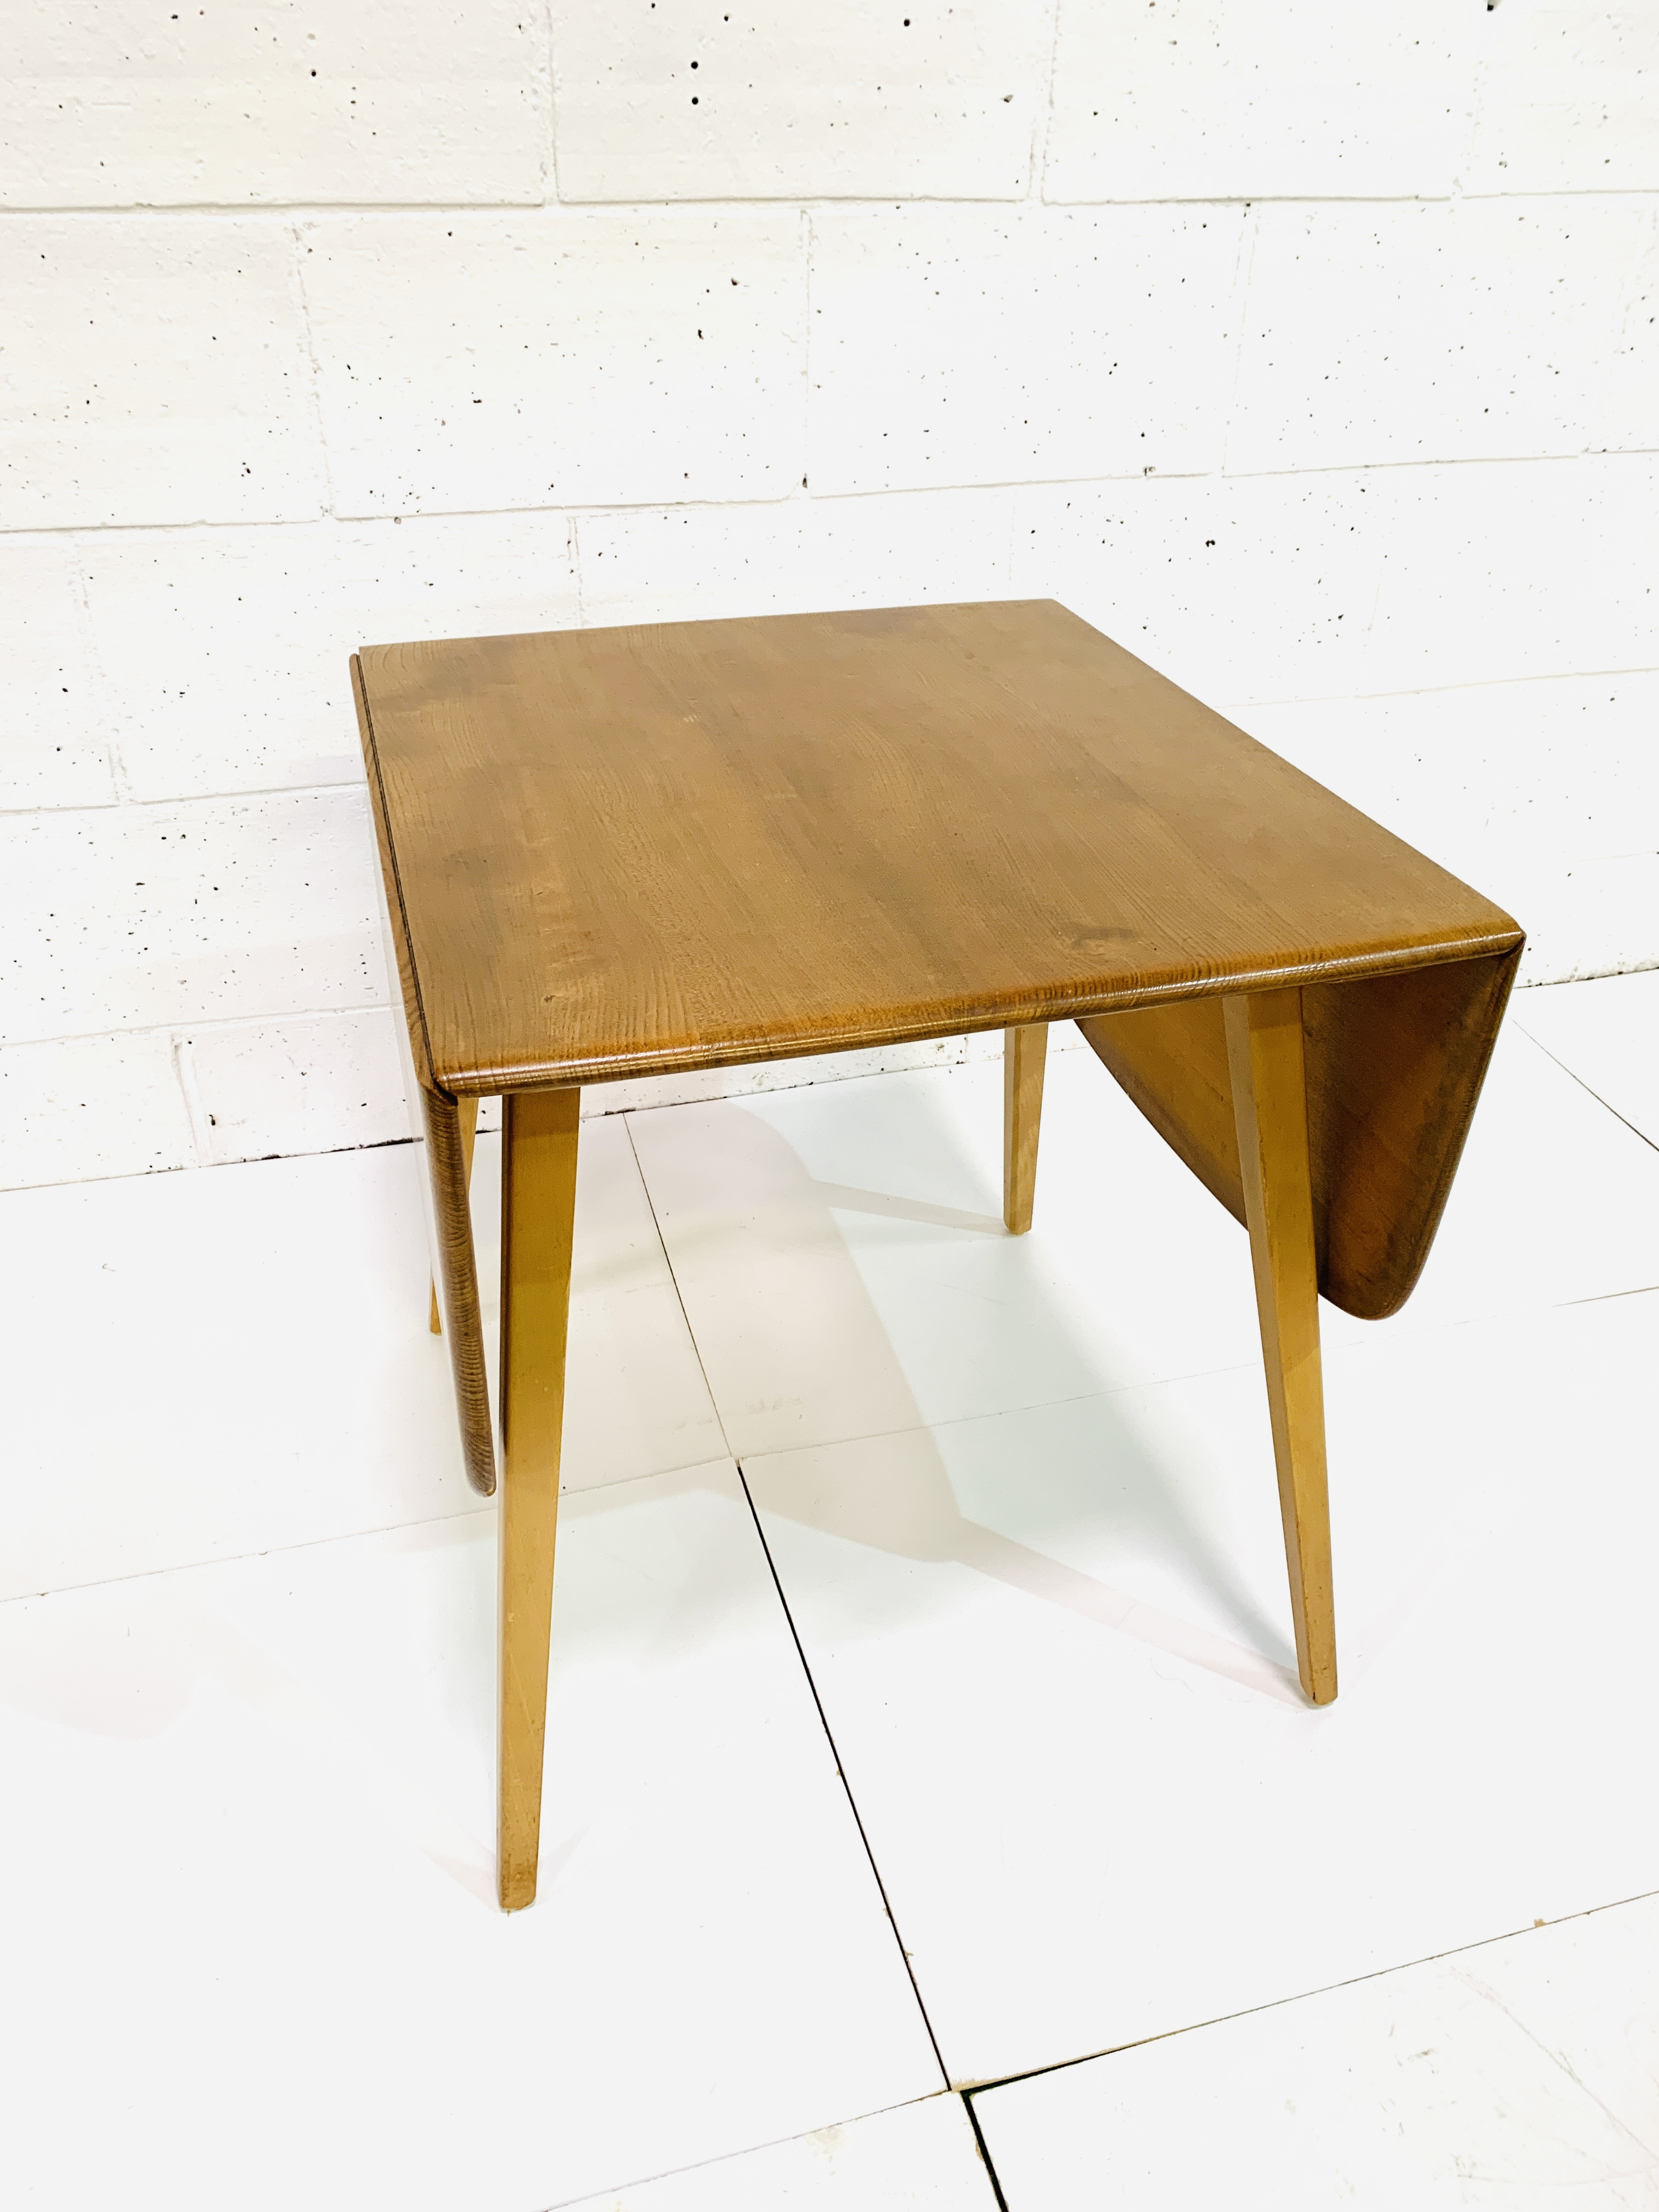 Ercol dropside table - Image 7 of 7